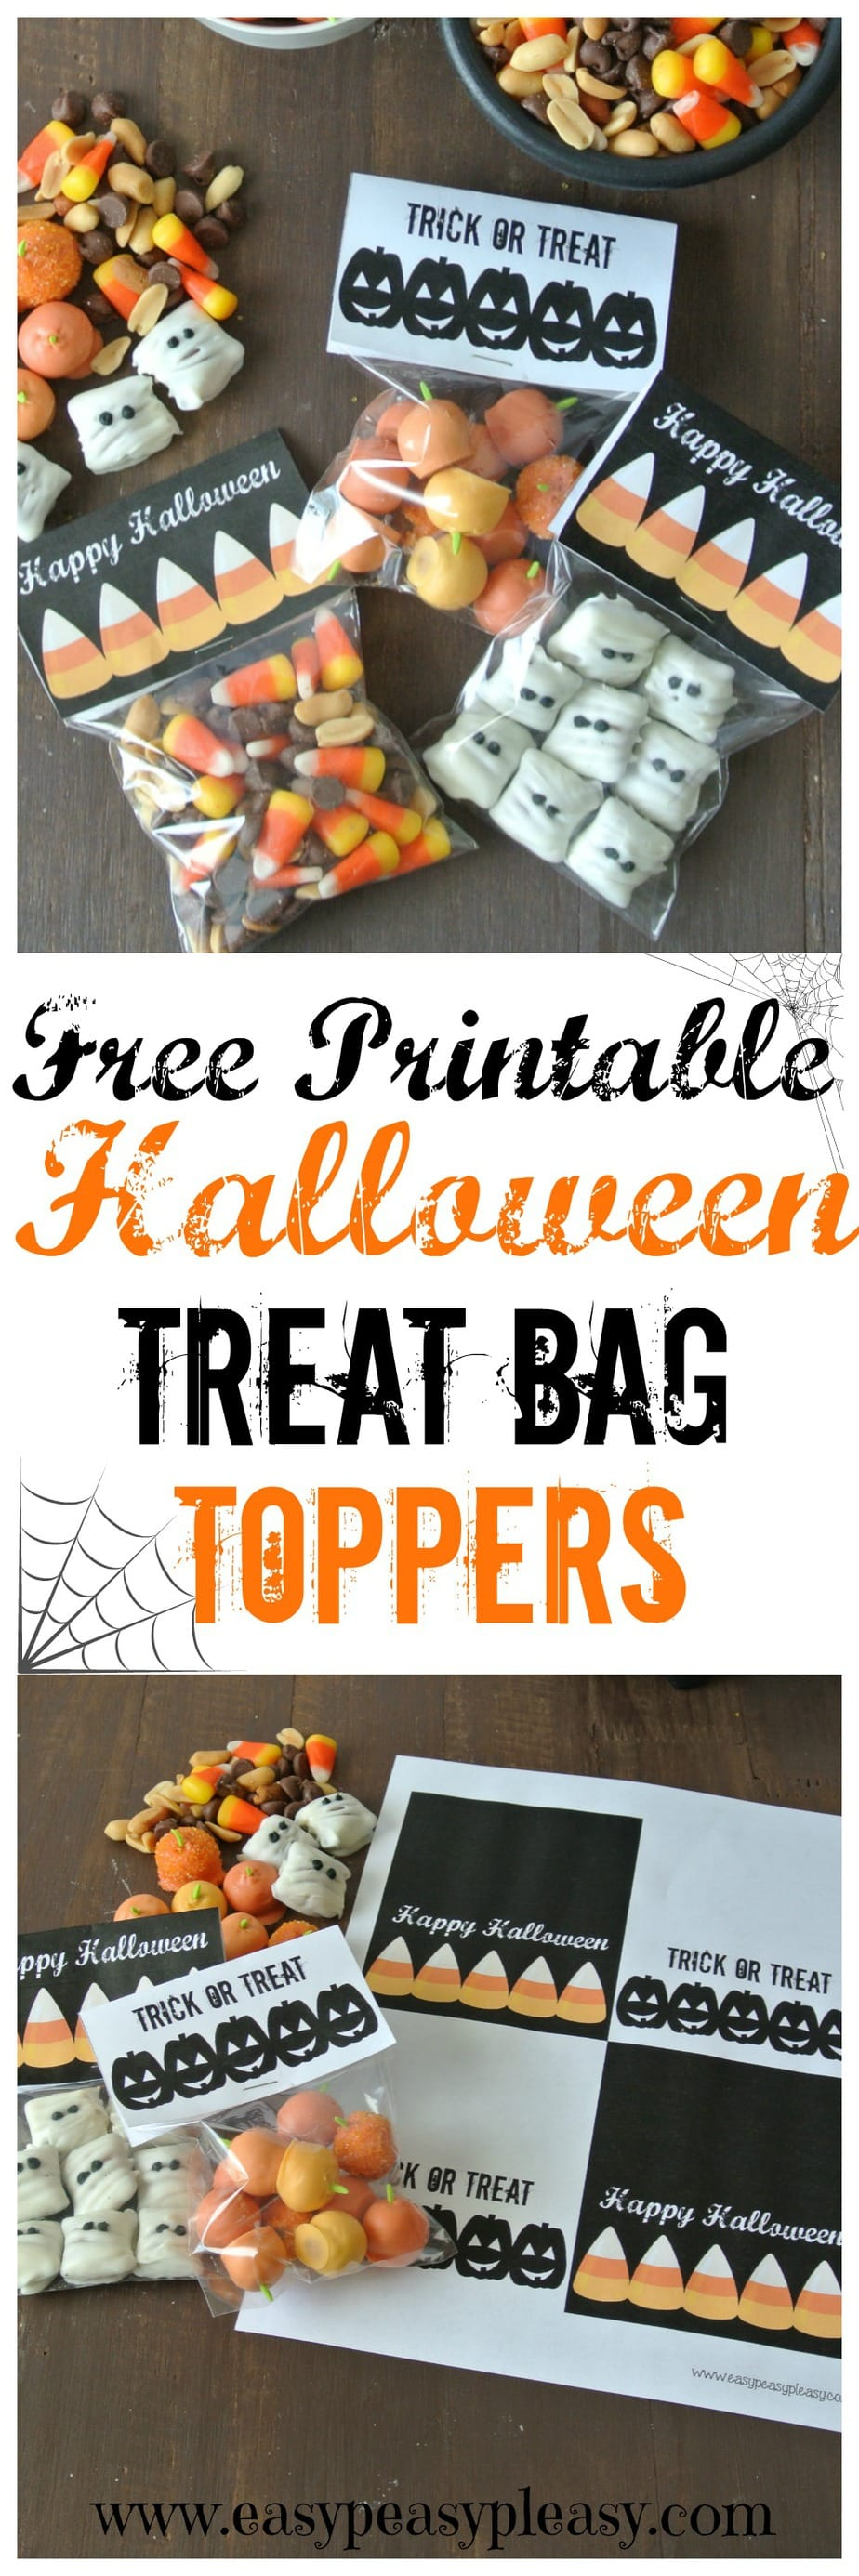 Free Printable Halloween Treat Bag Toppers